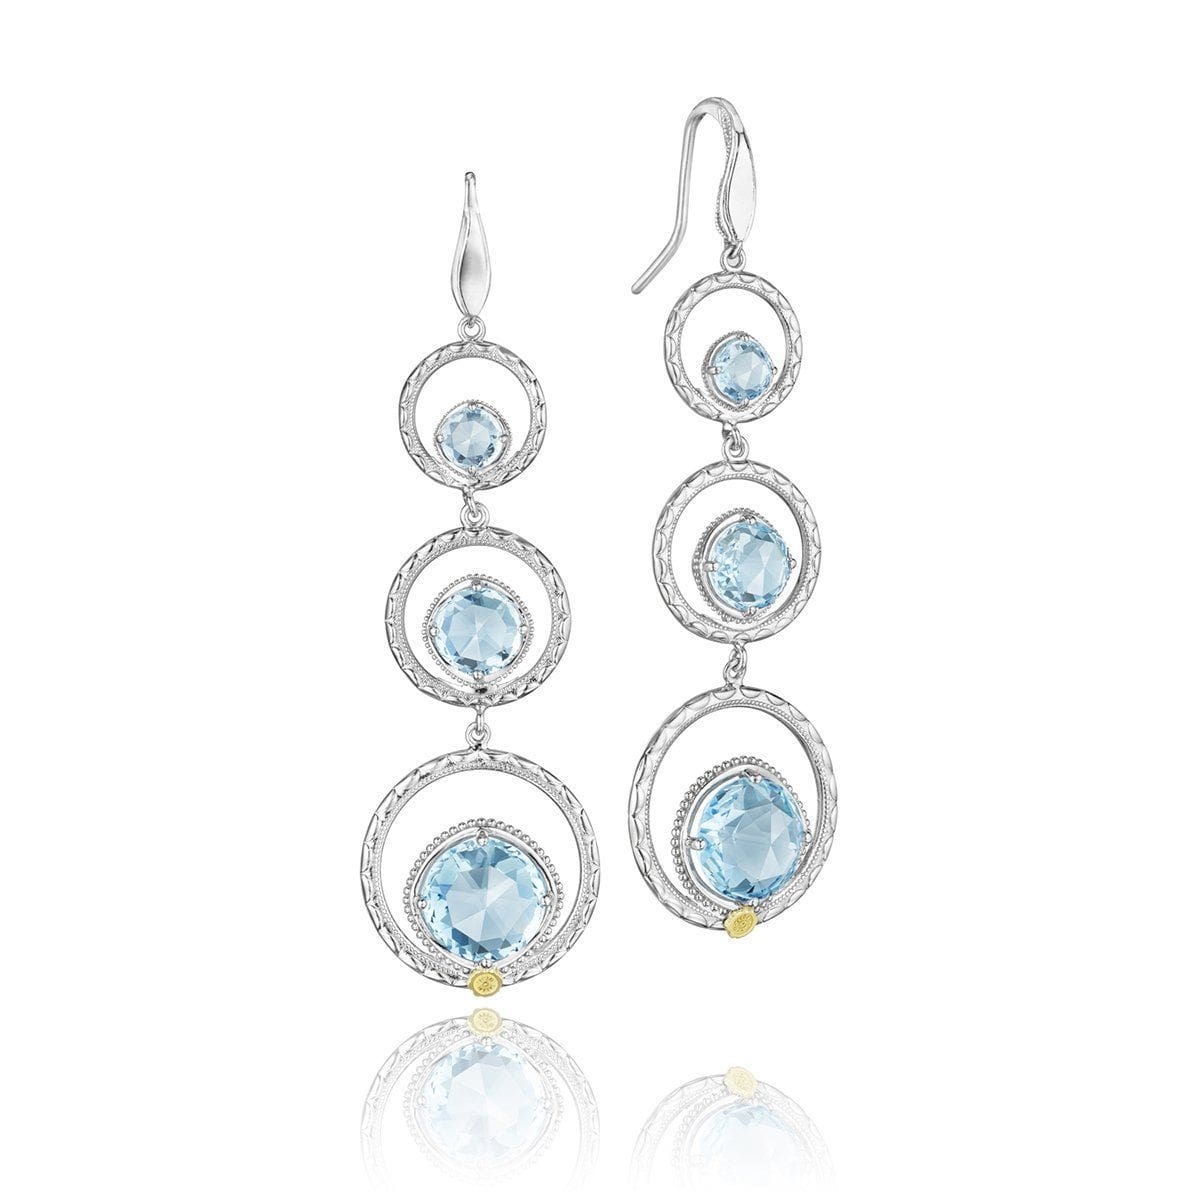 Silver Sky Blue Topaz Dangling Earrings - SE15002-Tacori-Renee Taylor Gallery